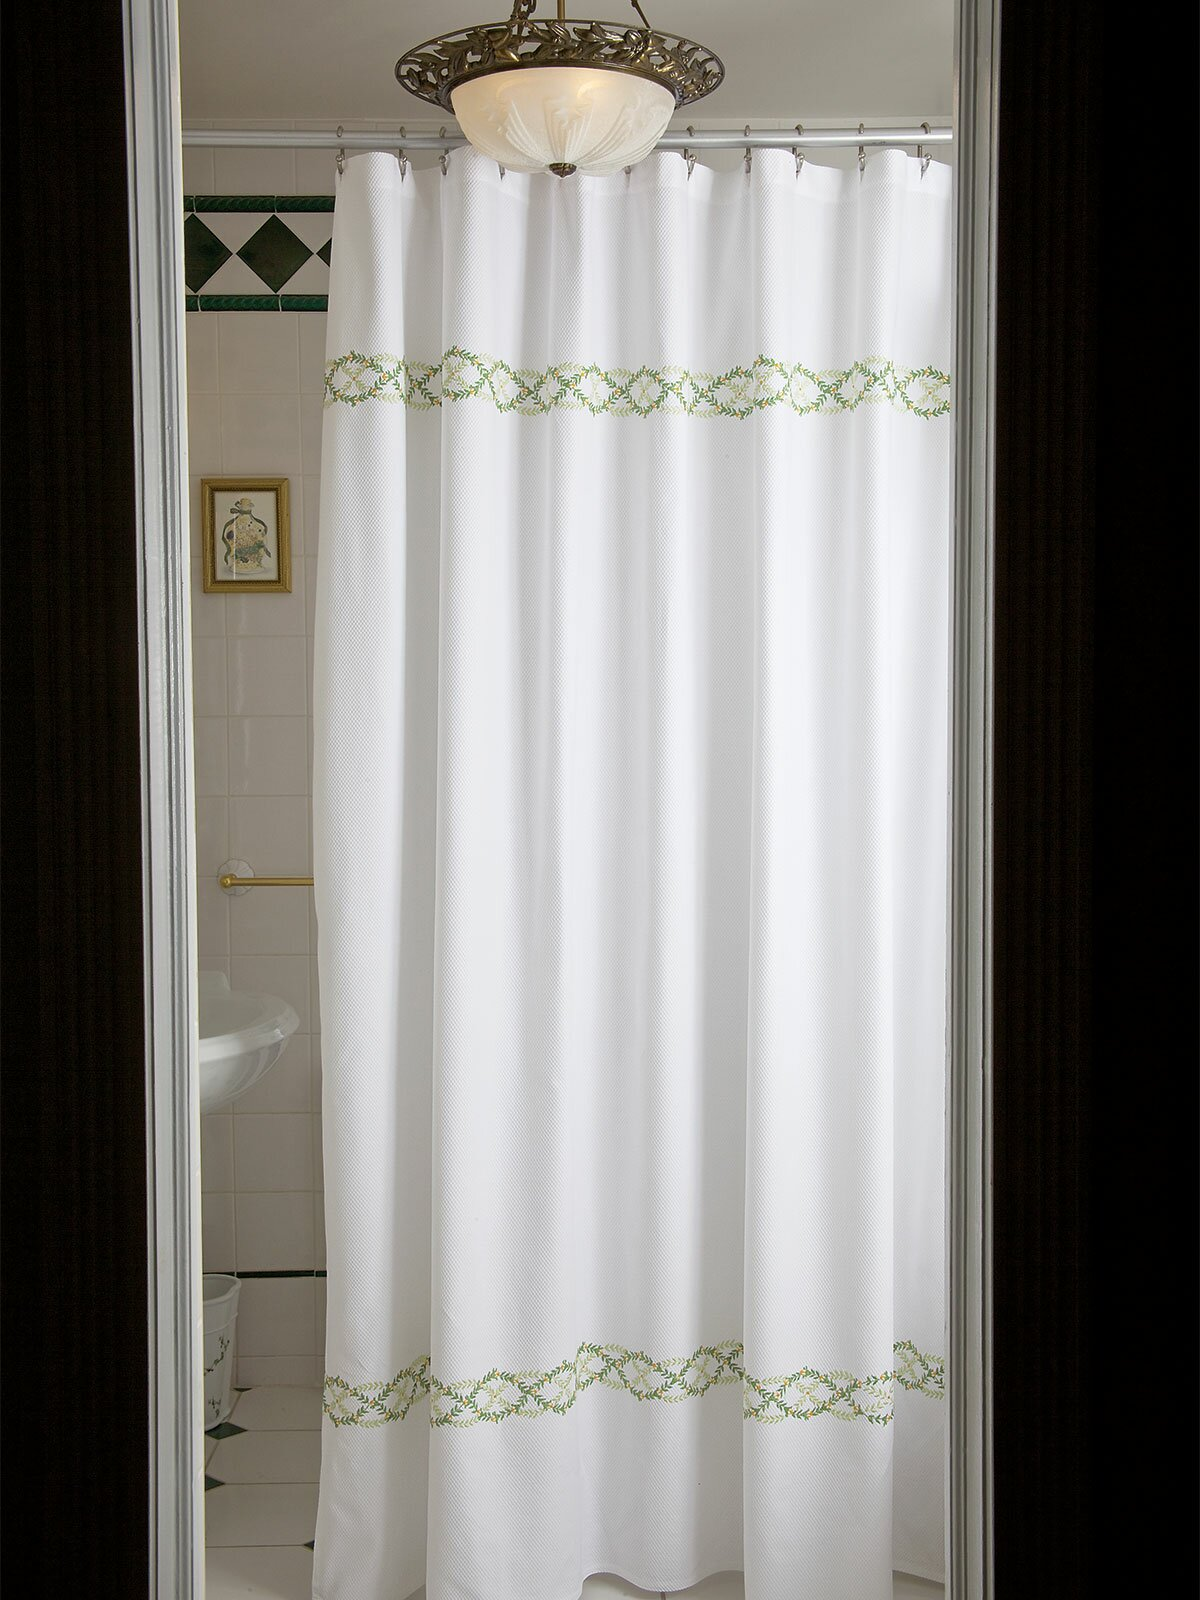 Bronze Shower Curtain Rod Curtain Crafty Inspiration